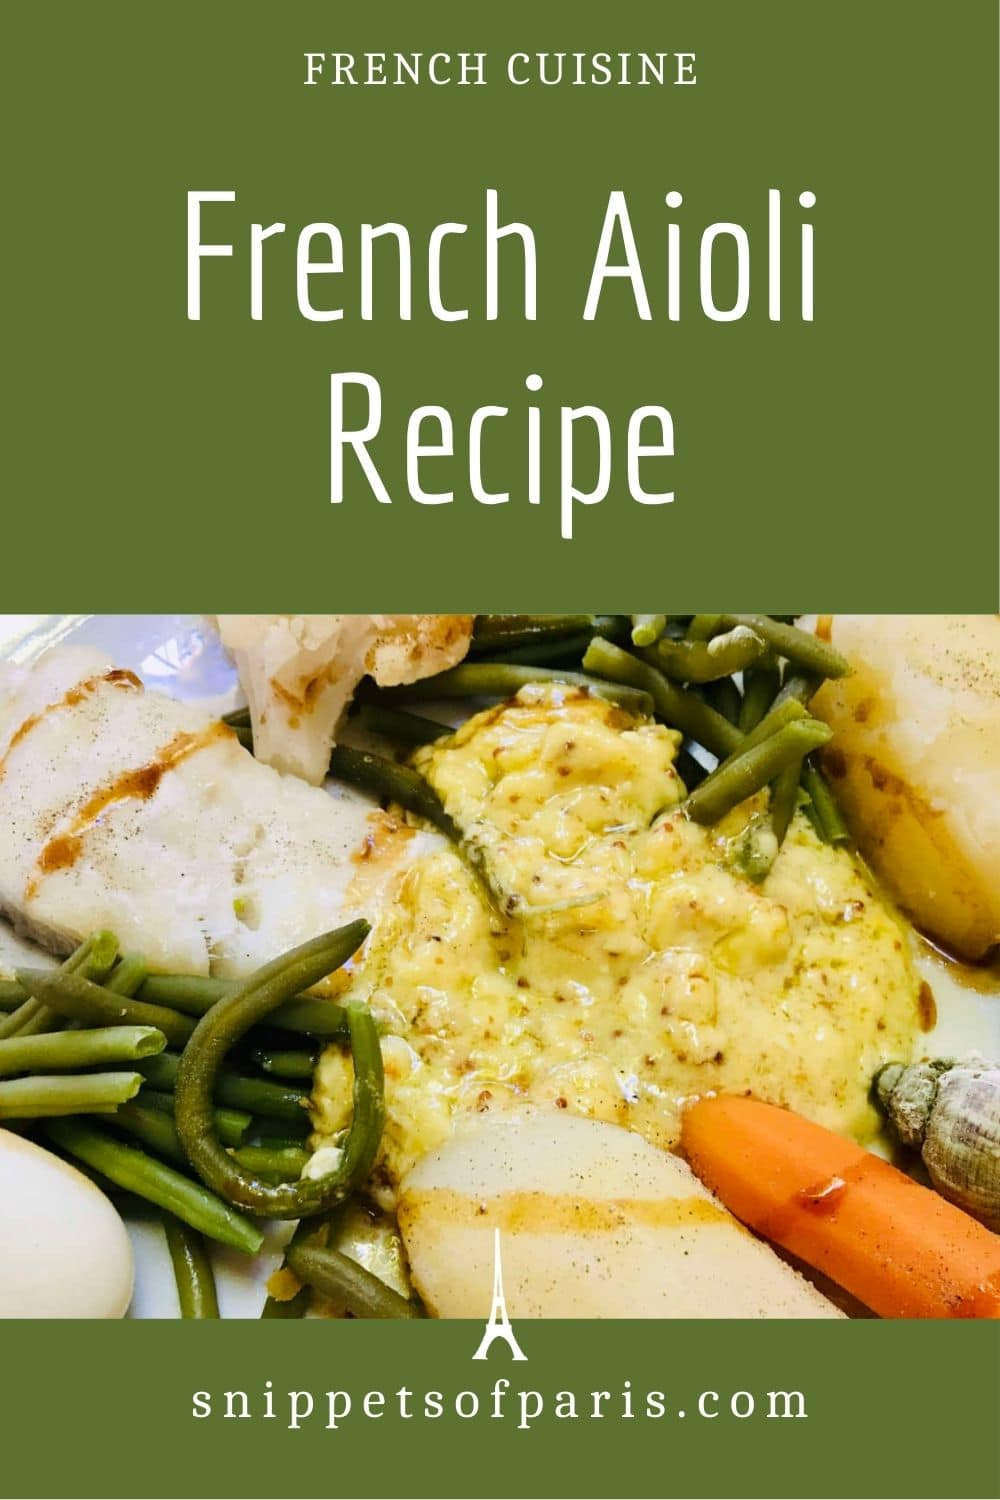 Easy Provençale Aioli recipe from the South of France